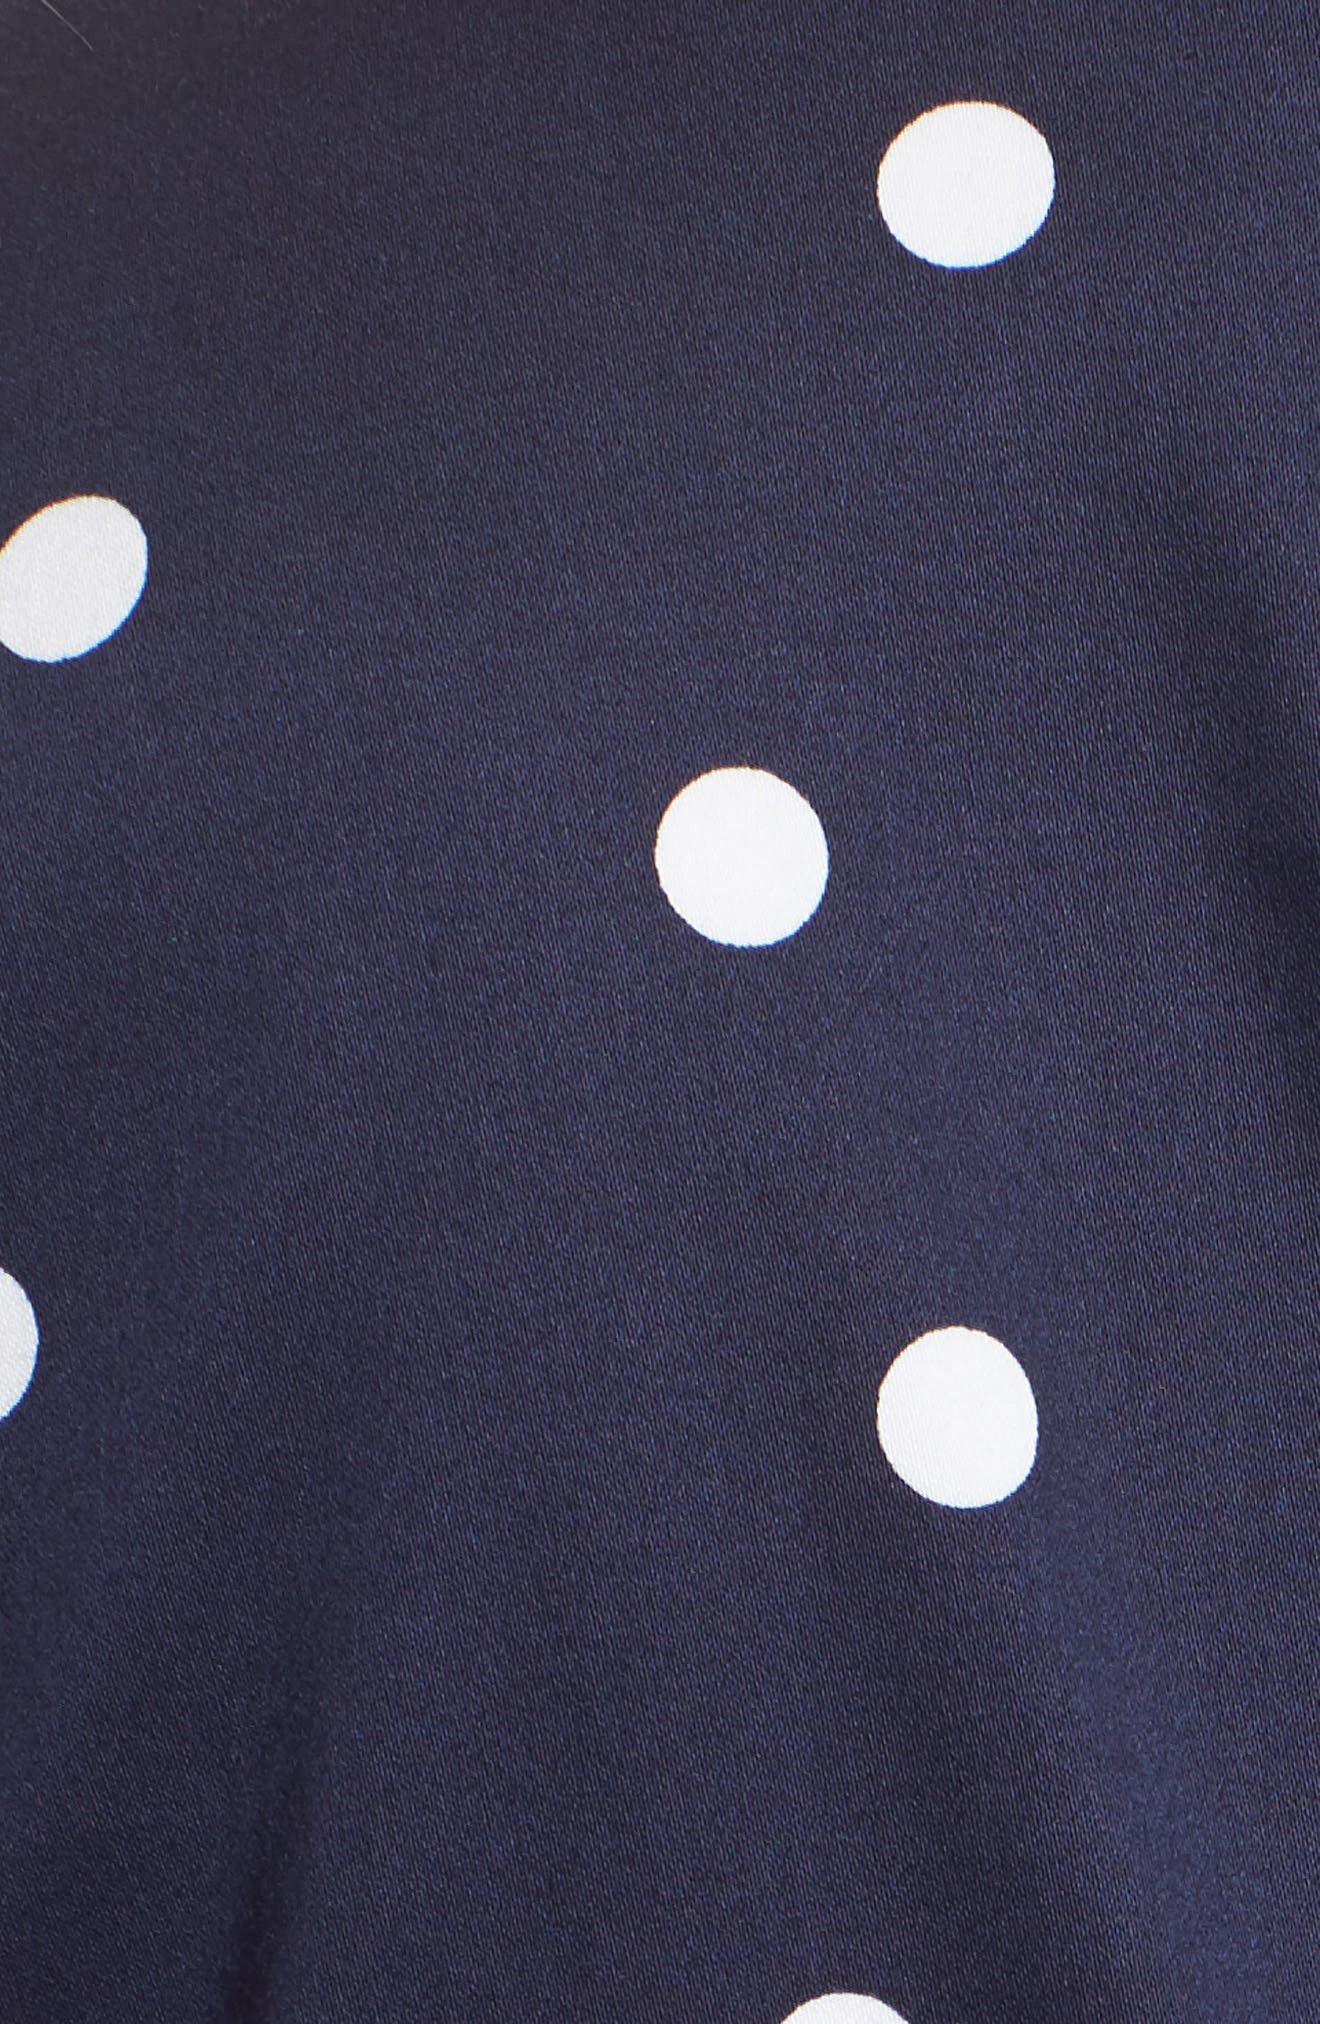 Scattered Dot Notch Collar Dress,                             Alternate thumbnail 5, color,                             Breton Blue/ Optic White